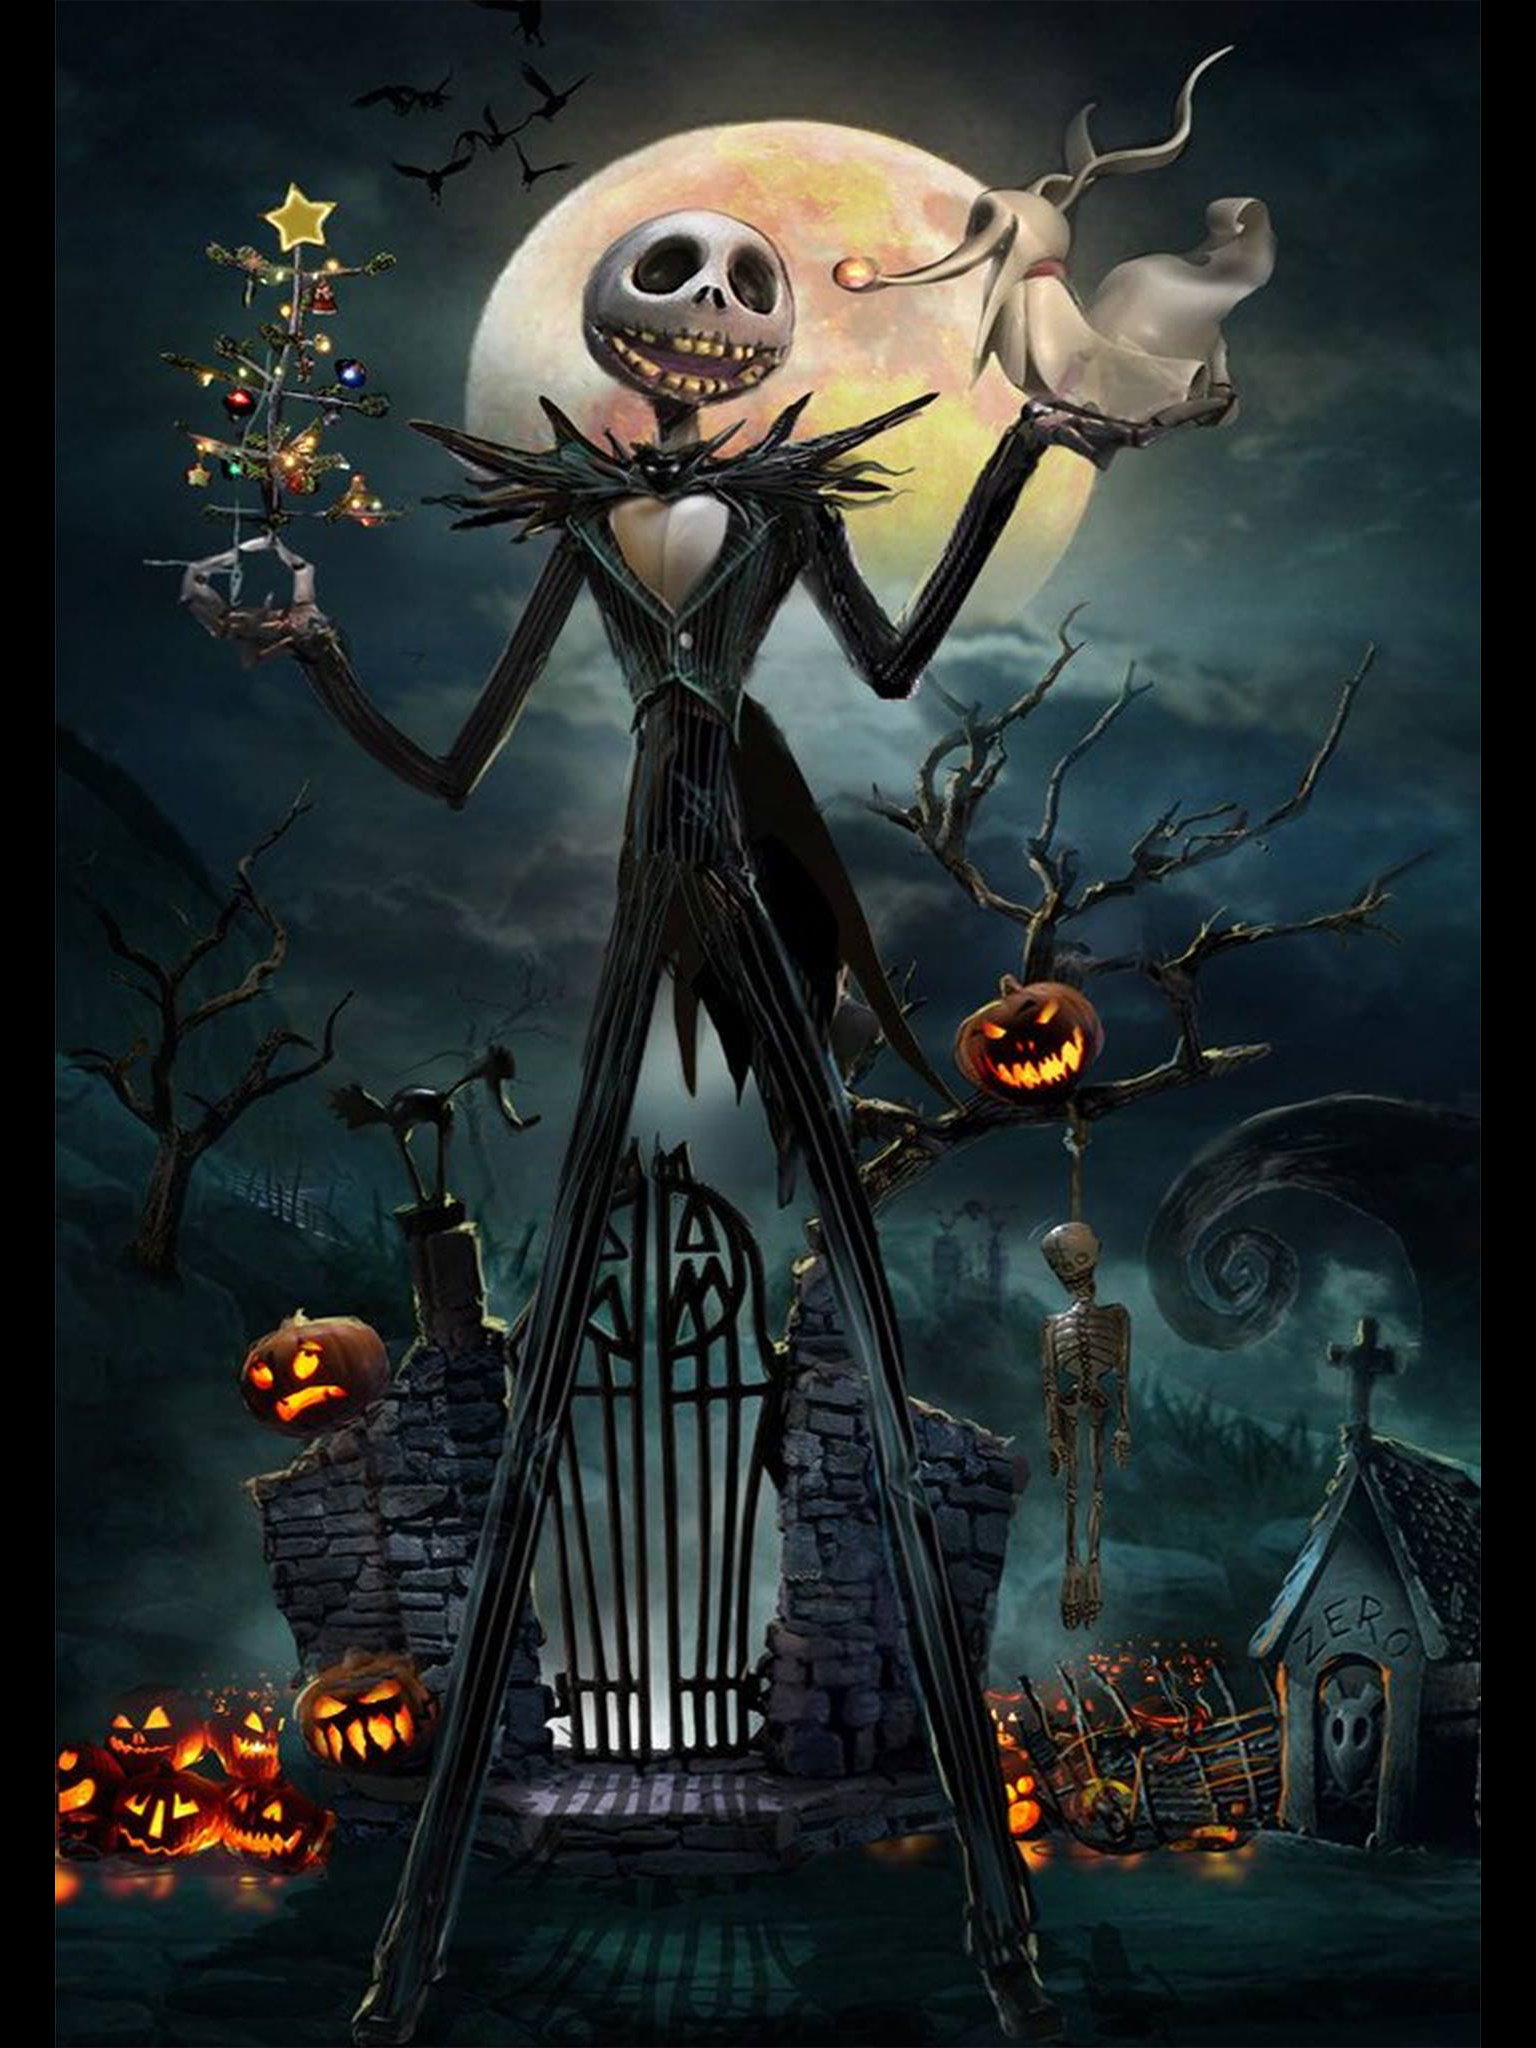 Pin by Dinah Demeny on Nightmare before Christmas in 2019